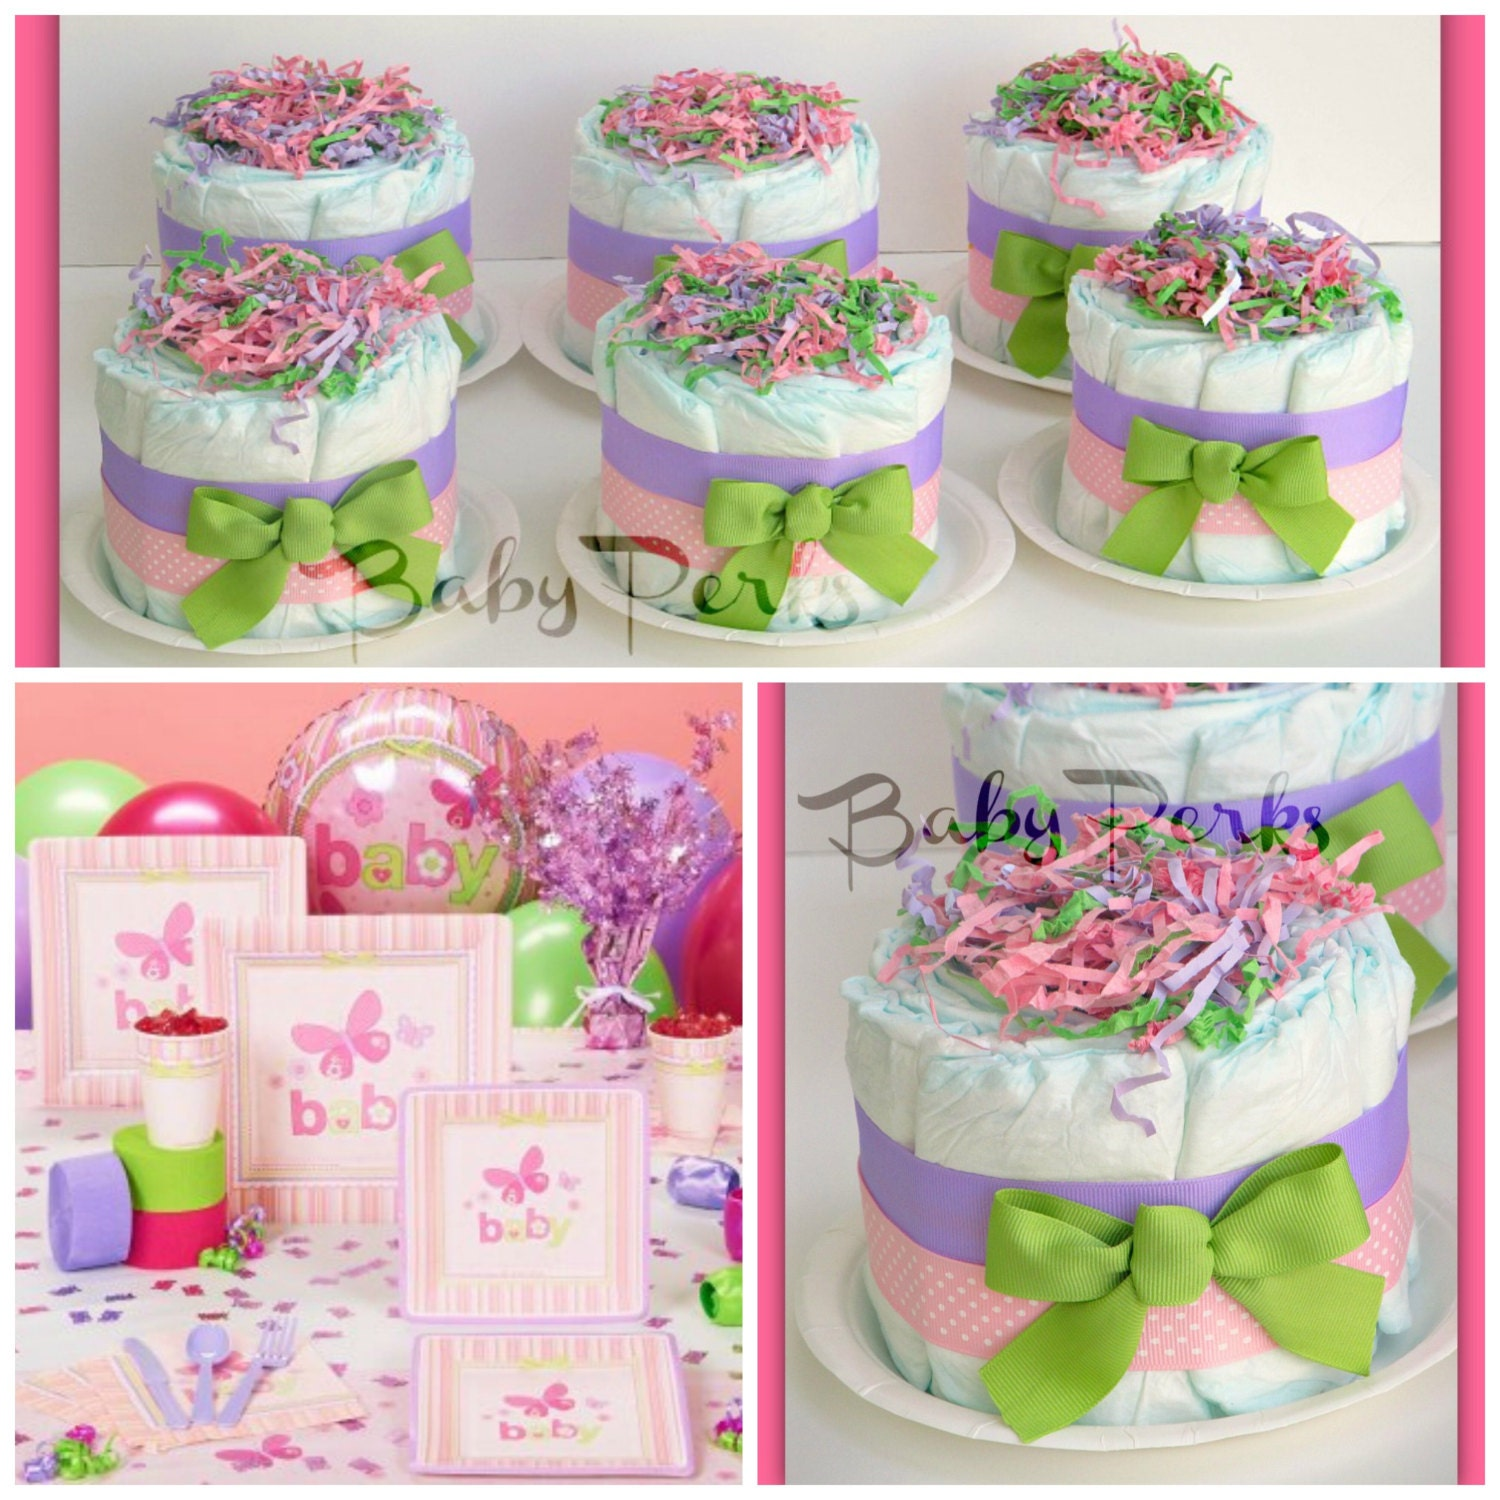 Baby girl baby shower decorations best baby decoration for Baby shower cake decoration ideas